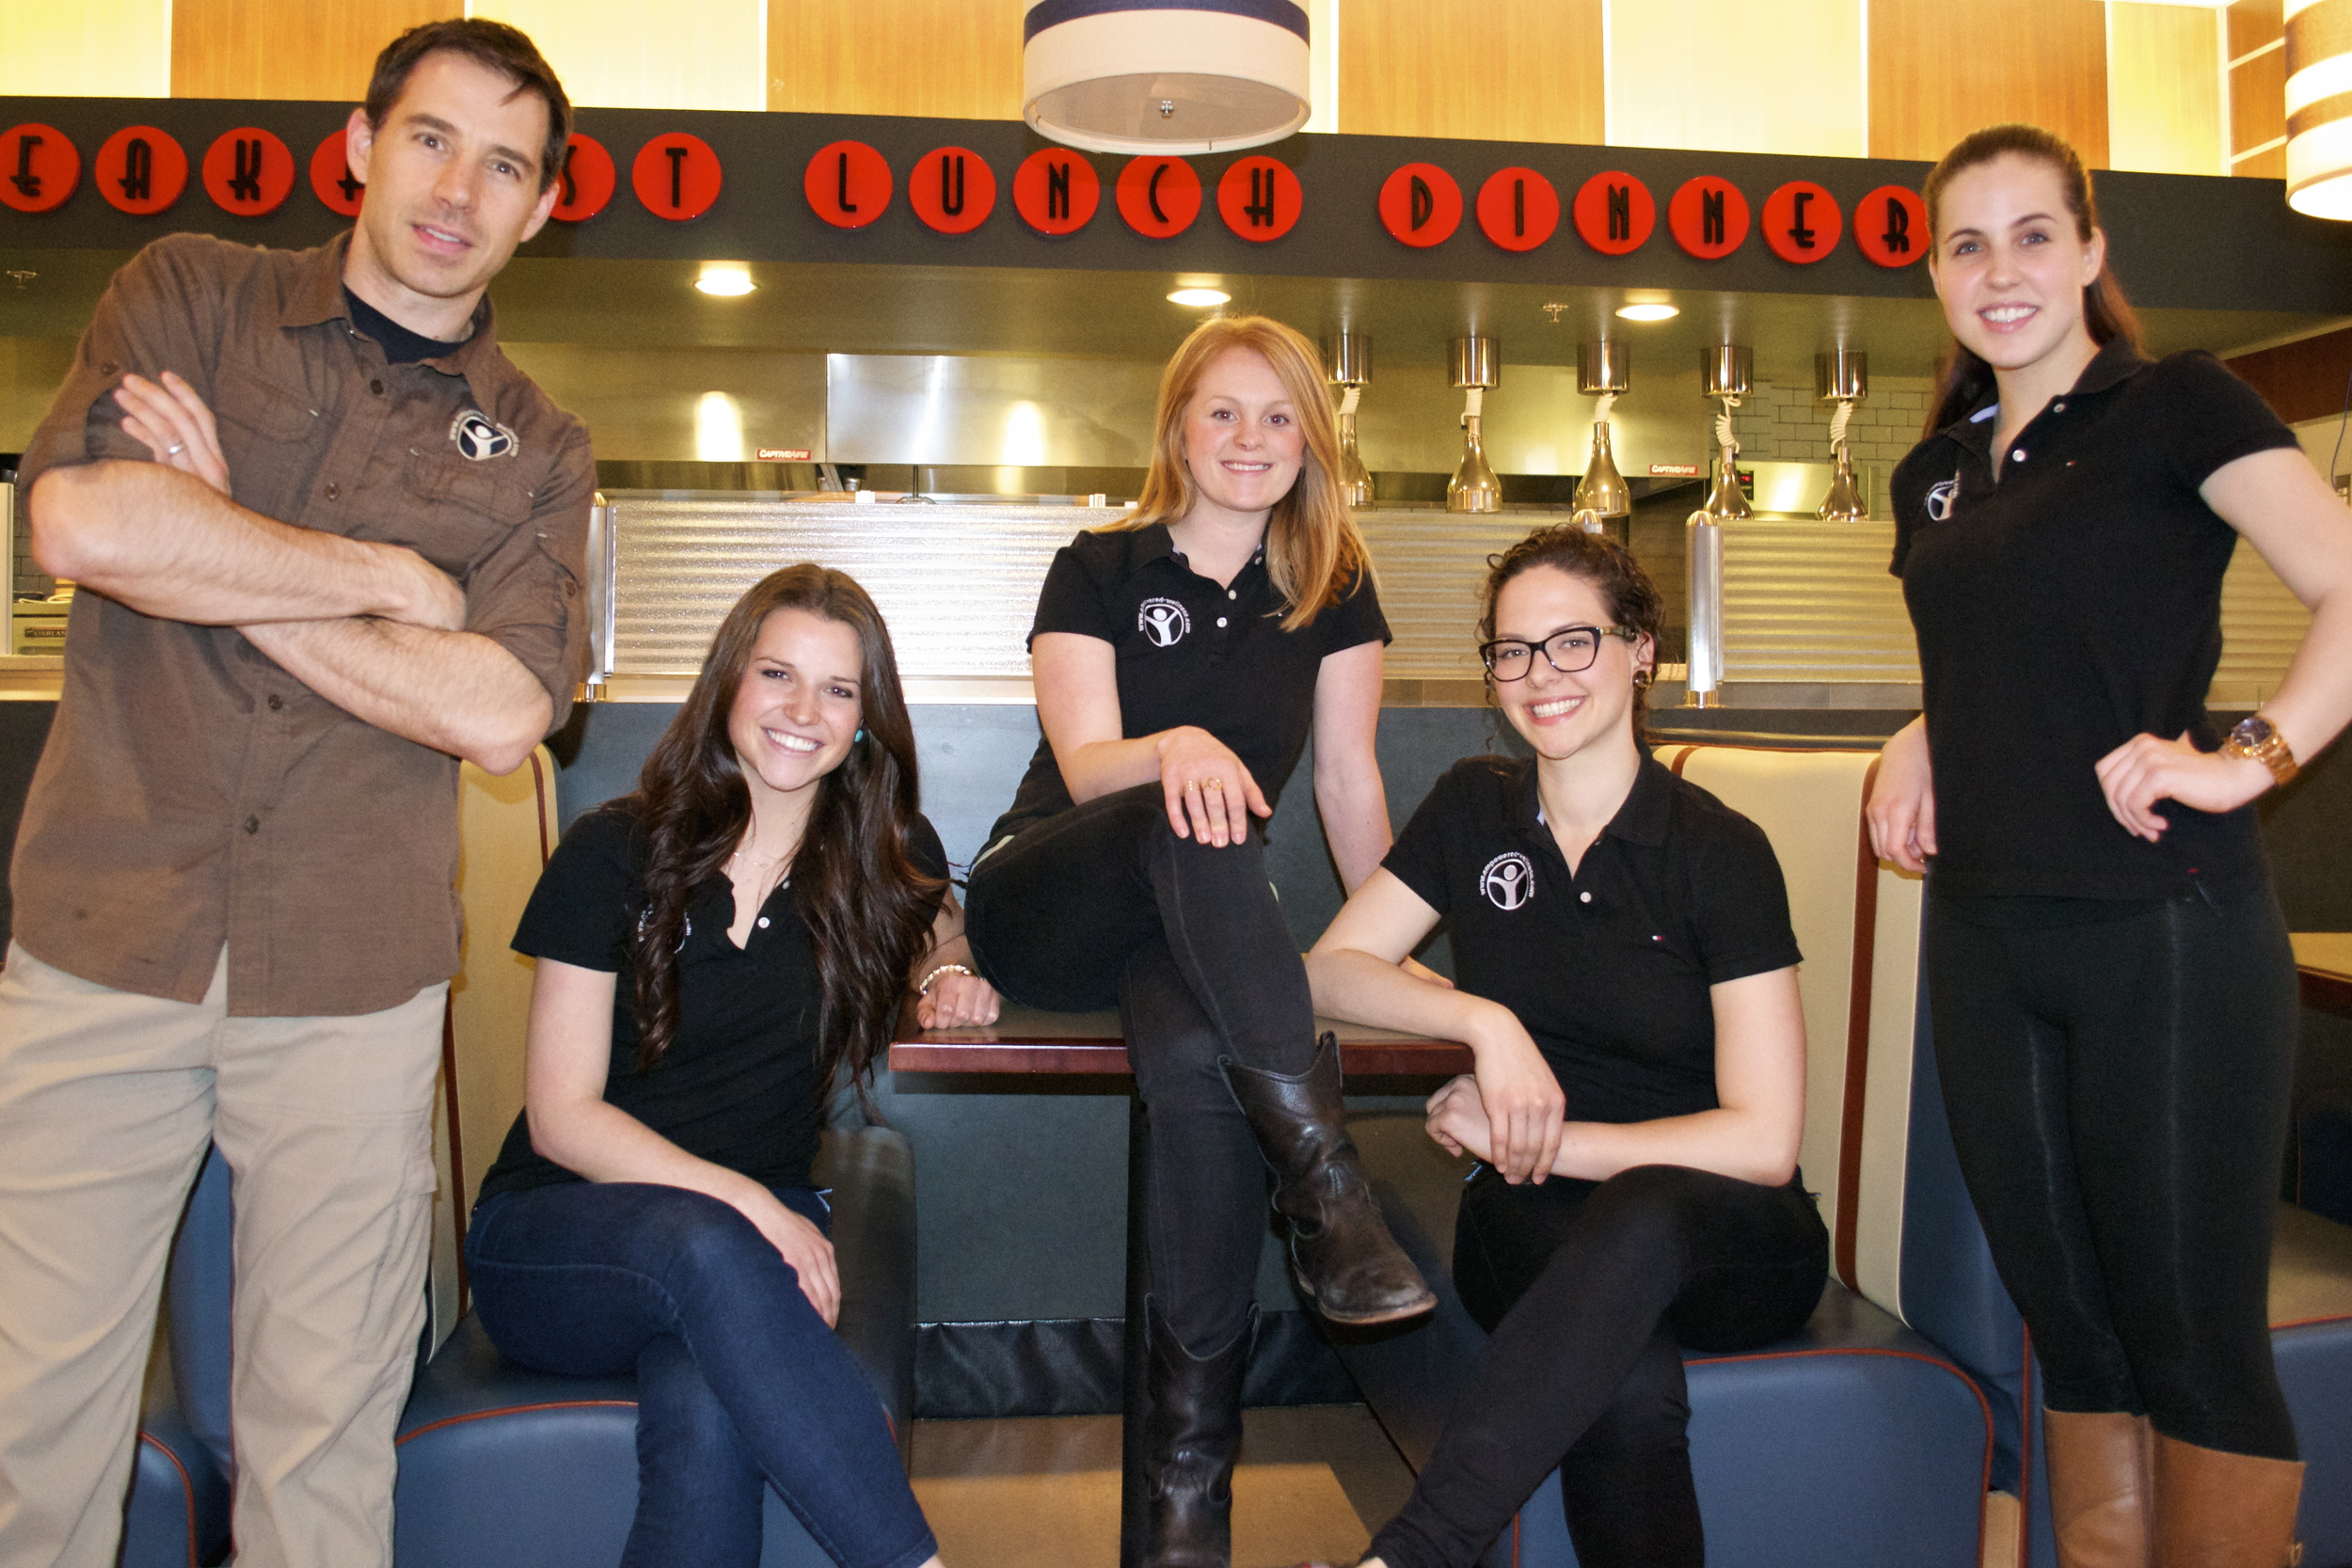 A few of our amazing After School Program Coaches: (Left to right) Ryan, Taylor, Kate, Ayra and Nicole.